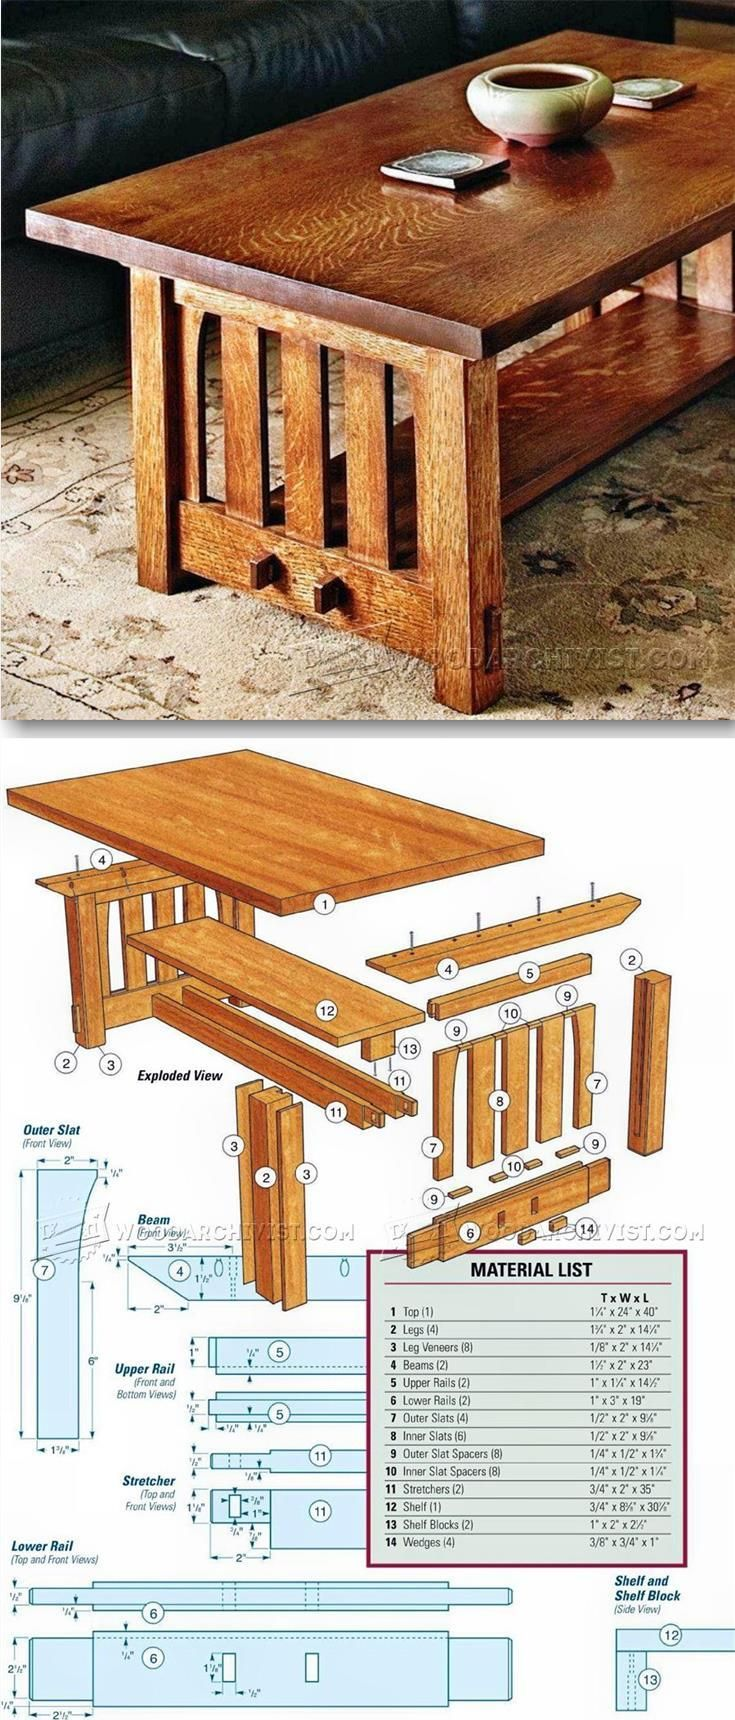 Best woodworking plans ideas on pinterest adirondack